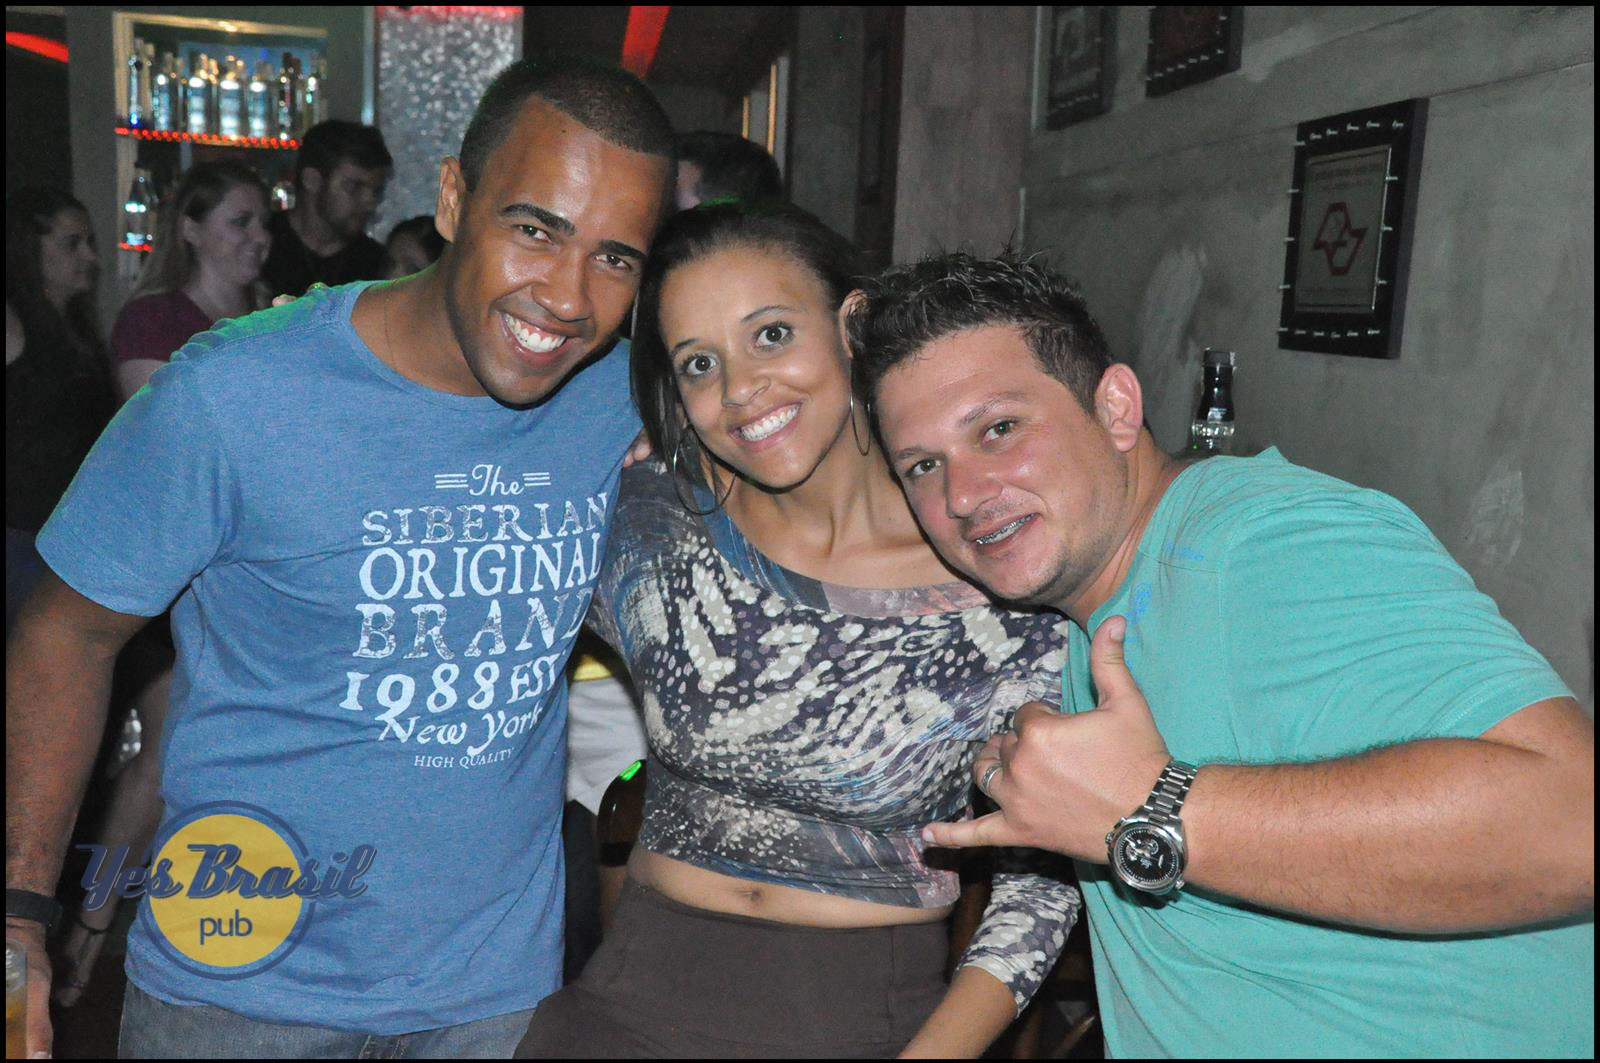 Jonas Sanches e Edsonn e Enrique animaram o sábado do Yes Brasil Pub